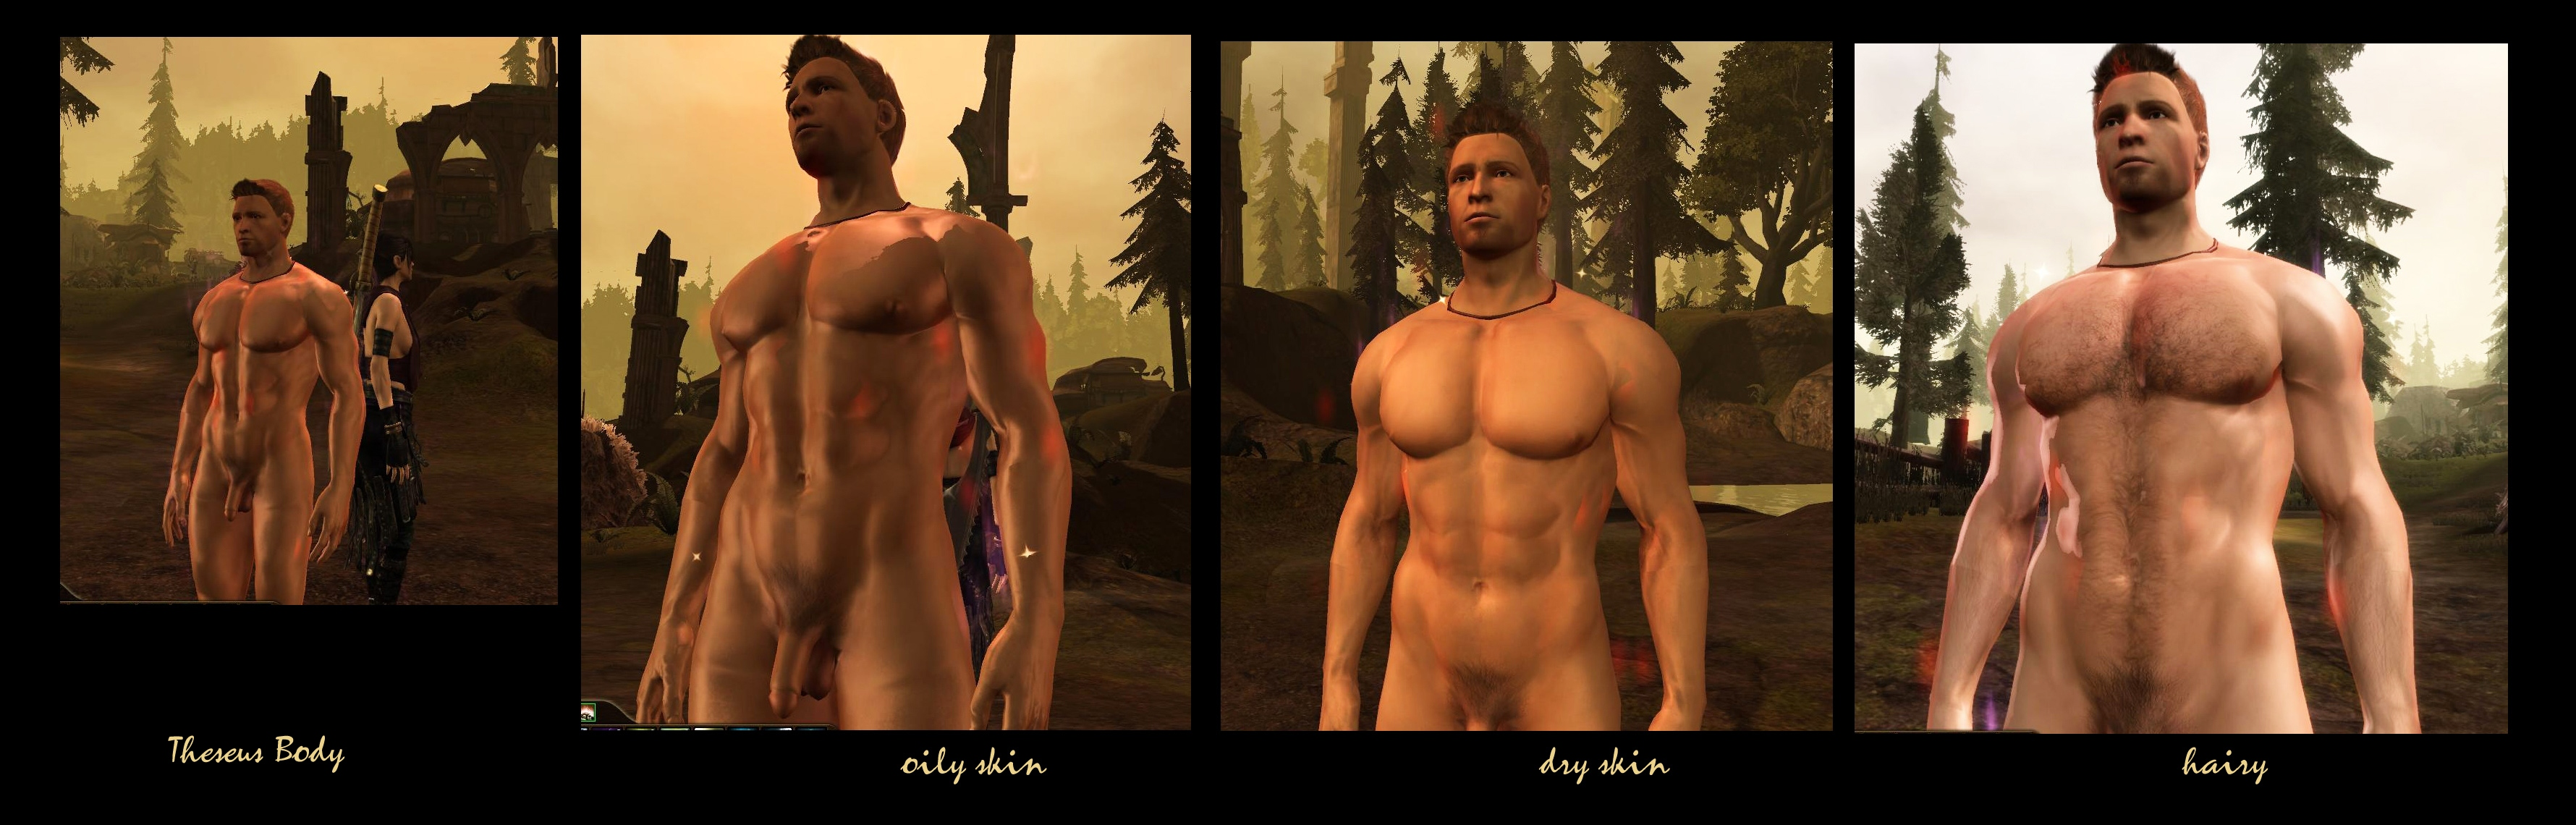 Dragon age origins mod nsfw sex sexy video